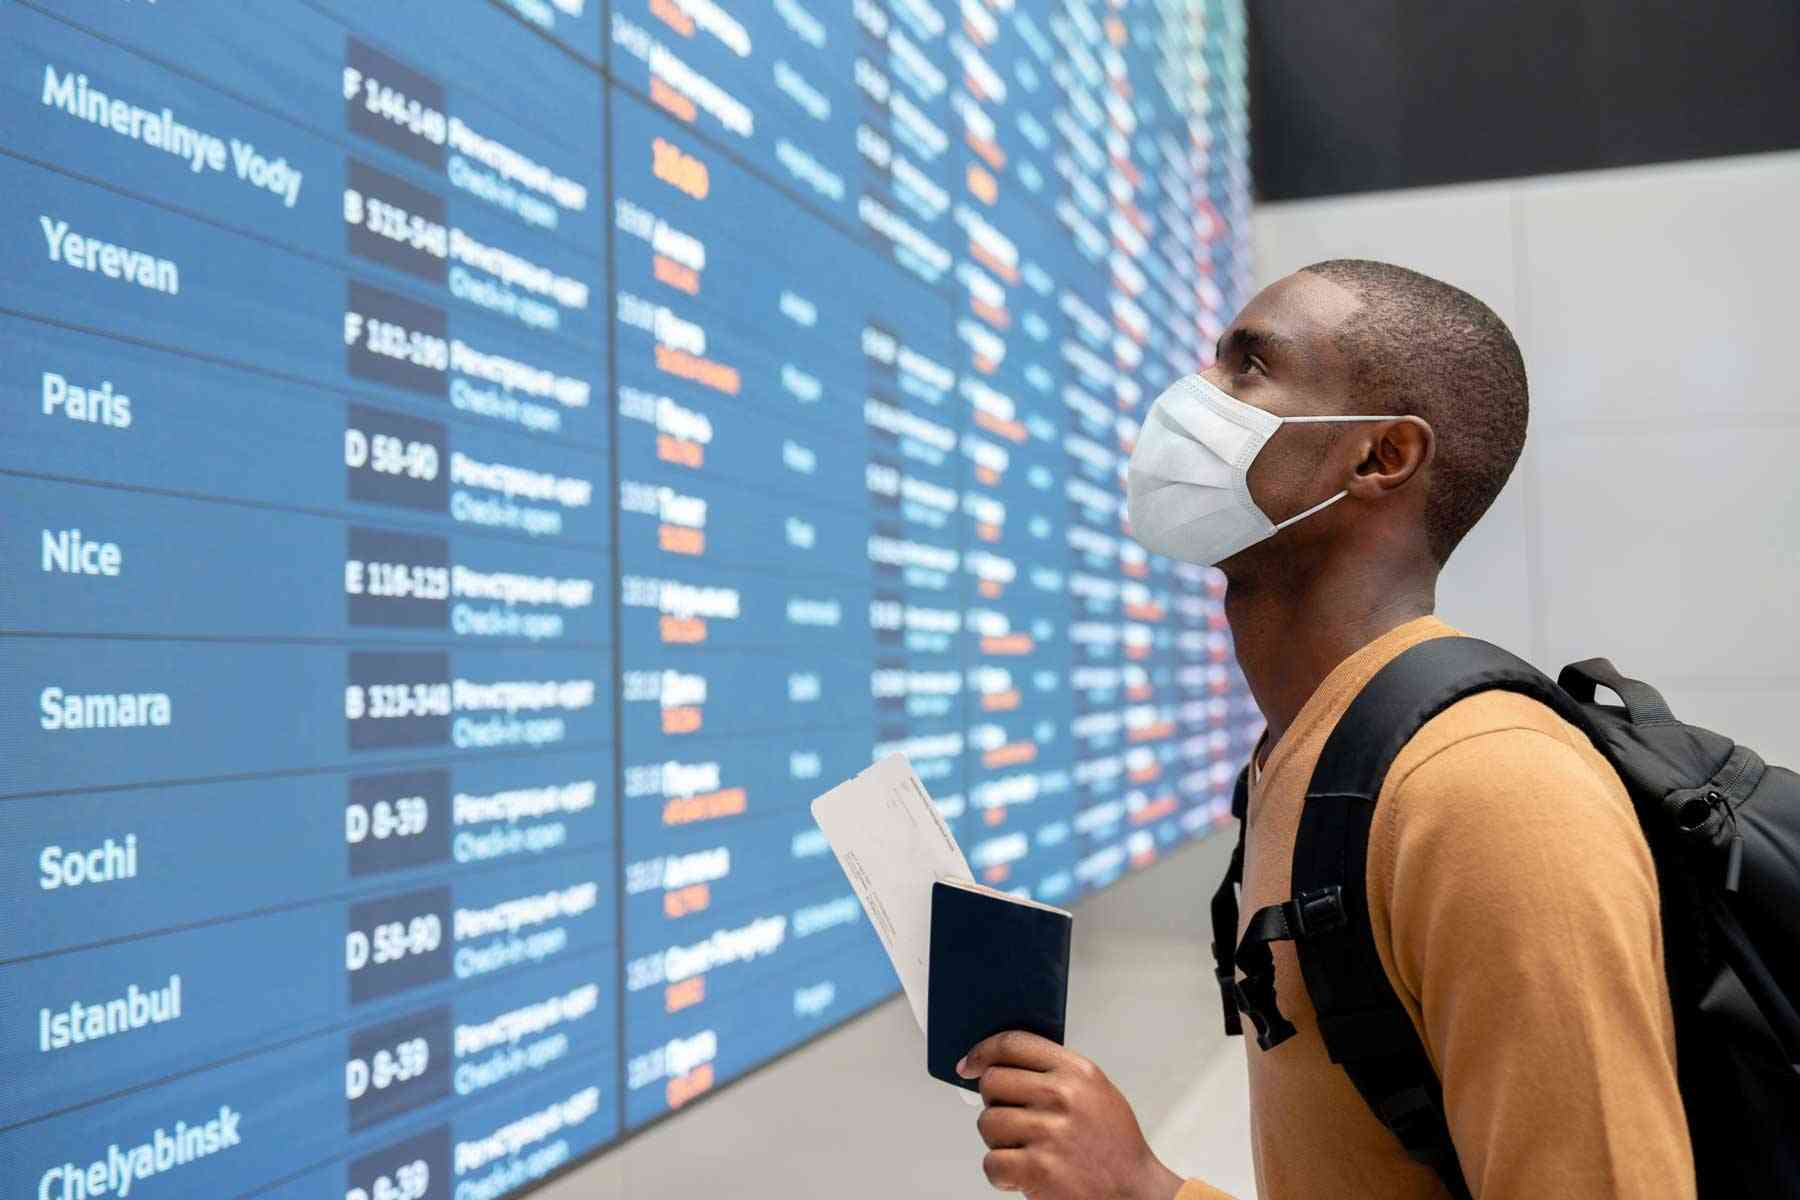 What Information You Needed To Book a Flight